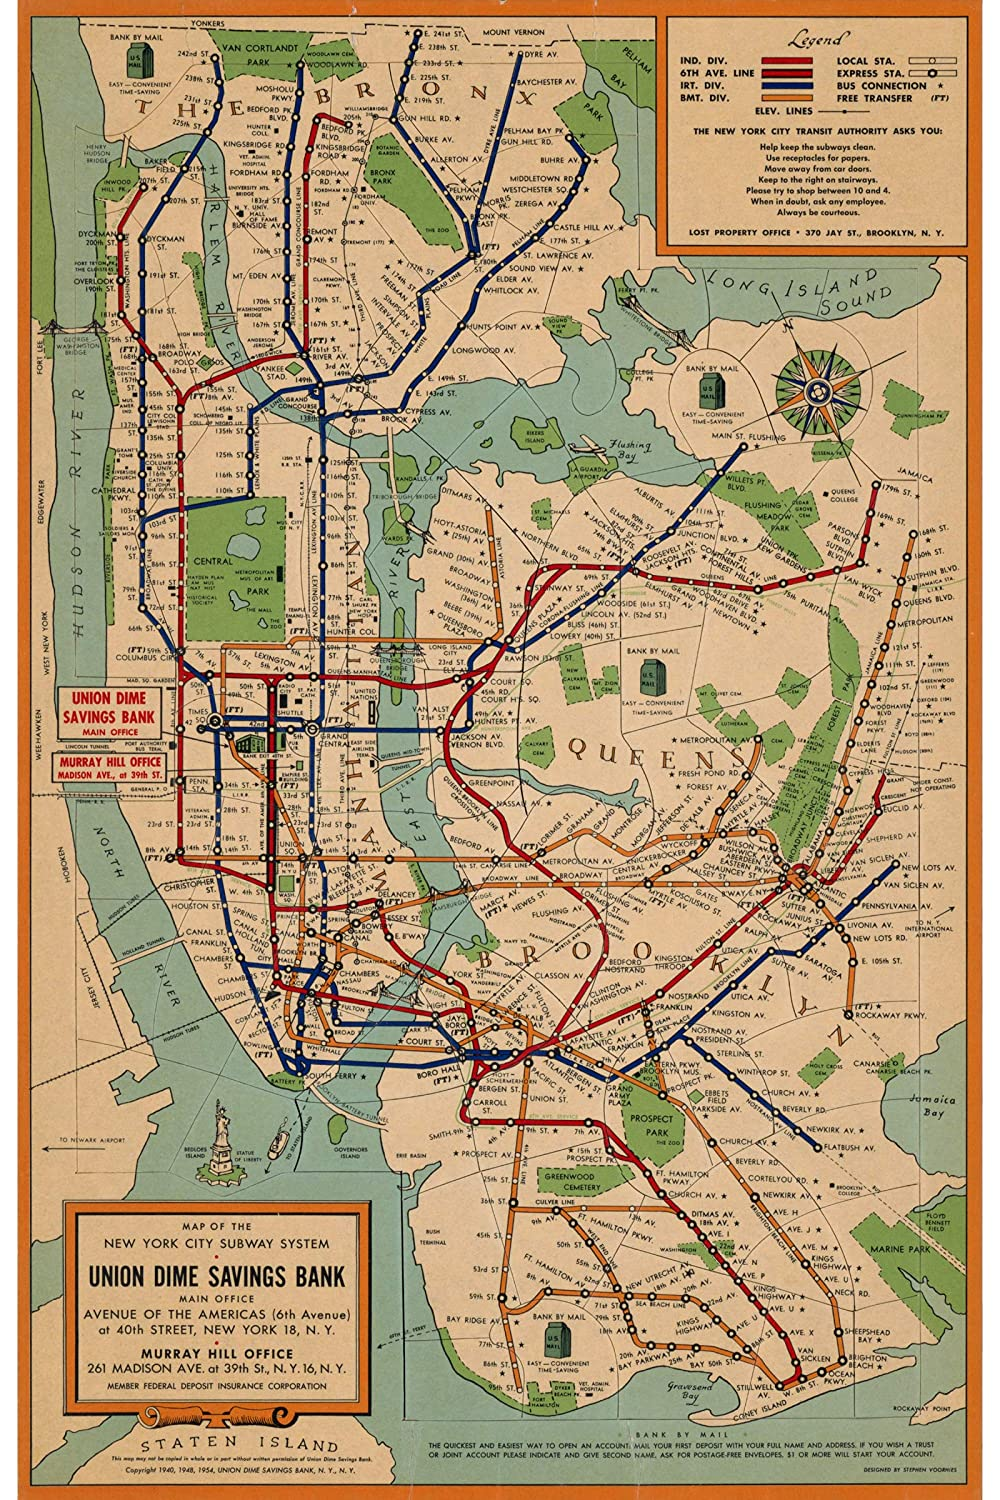 Amazon.com: NYC Subway Map Historical Reproduction | Transportation ...